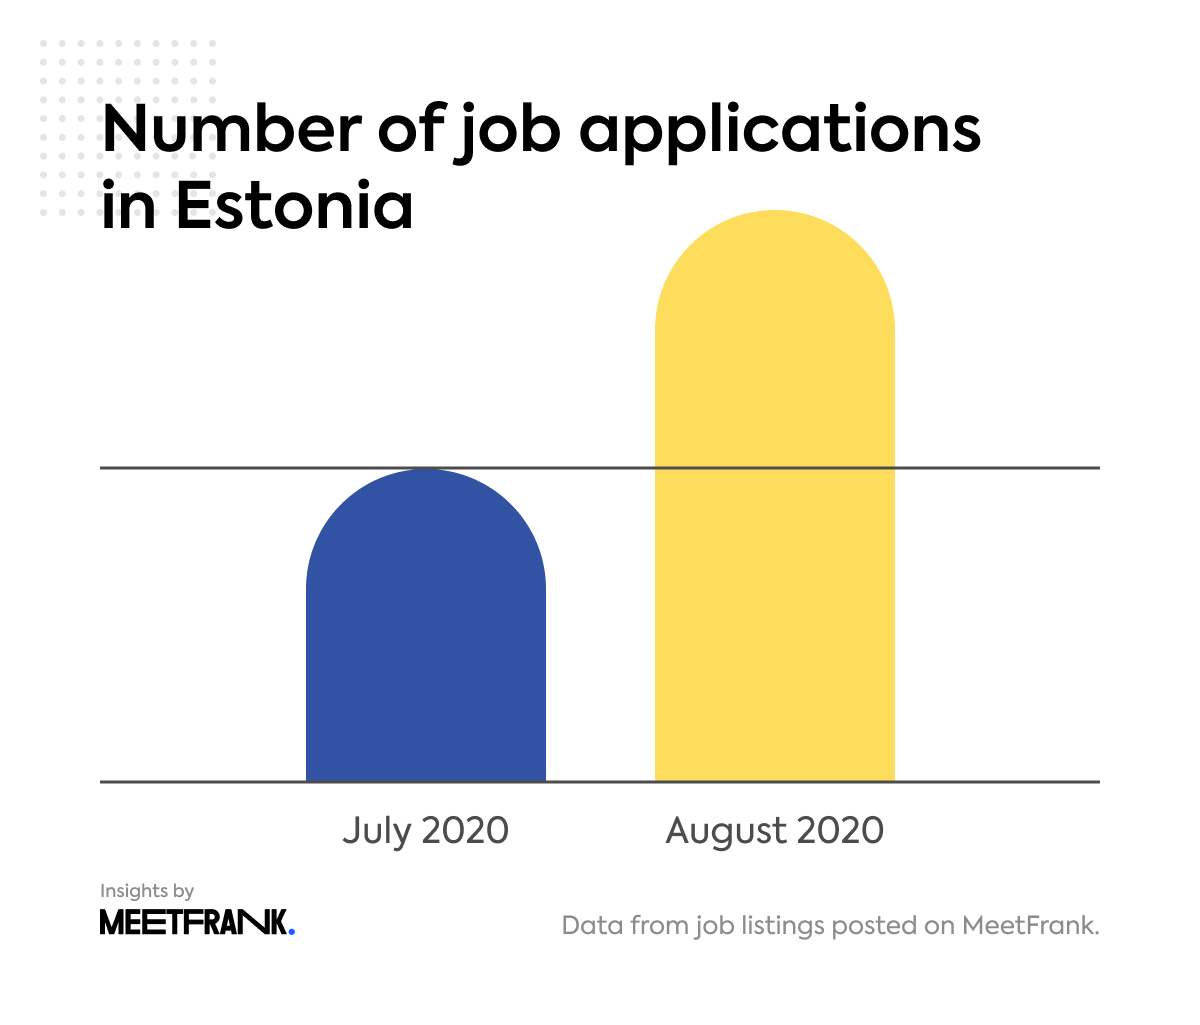 job applications in Estonia in August